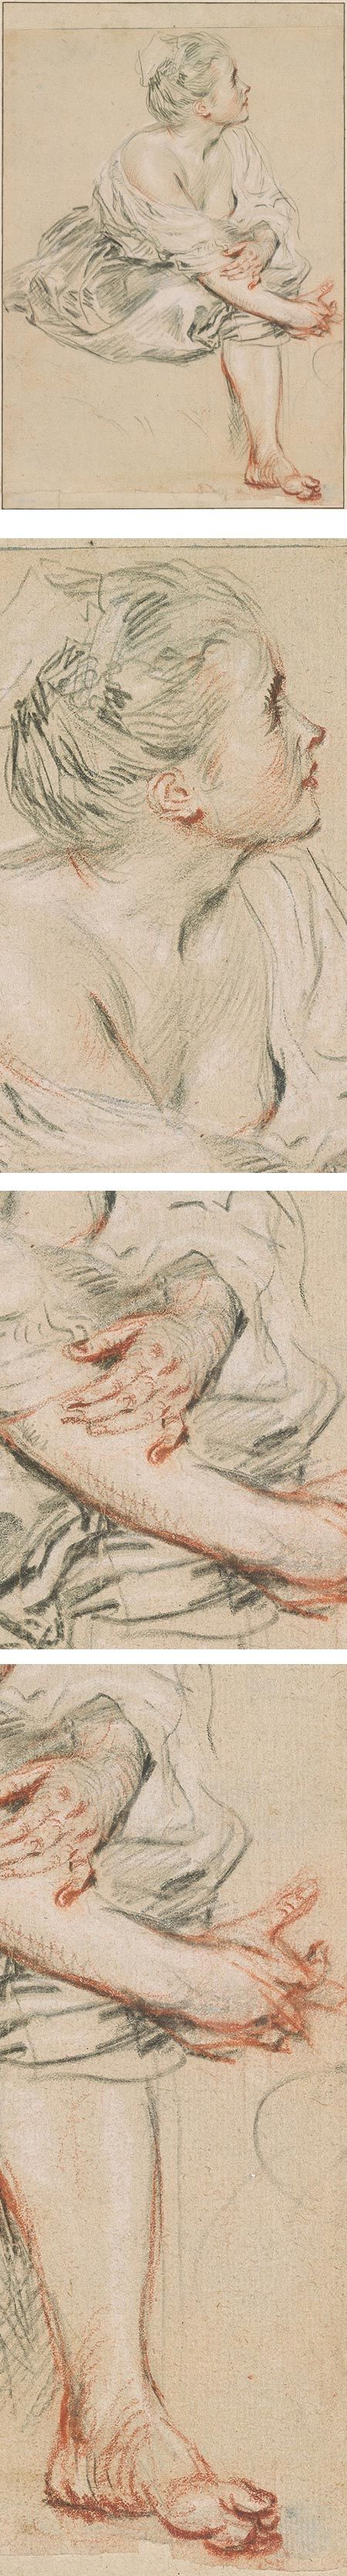 Seated Young Woman,  Jean-Antoine Watteau, Black, red and white chalk drawing on buff paper